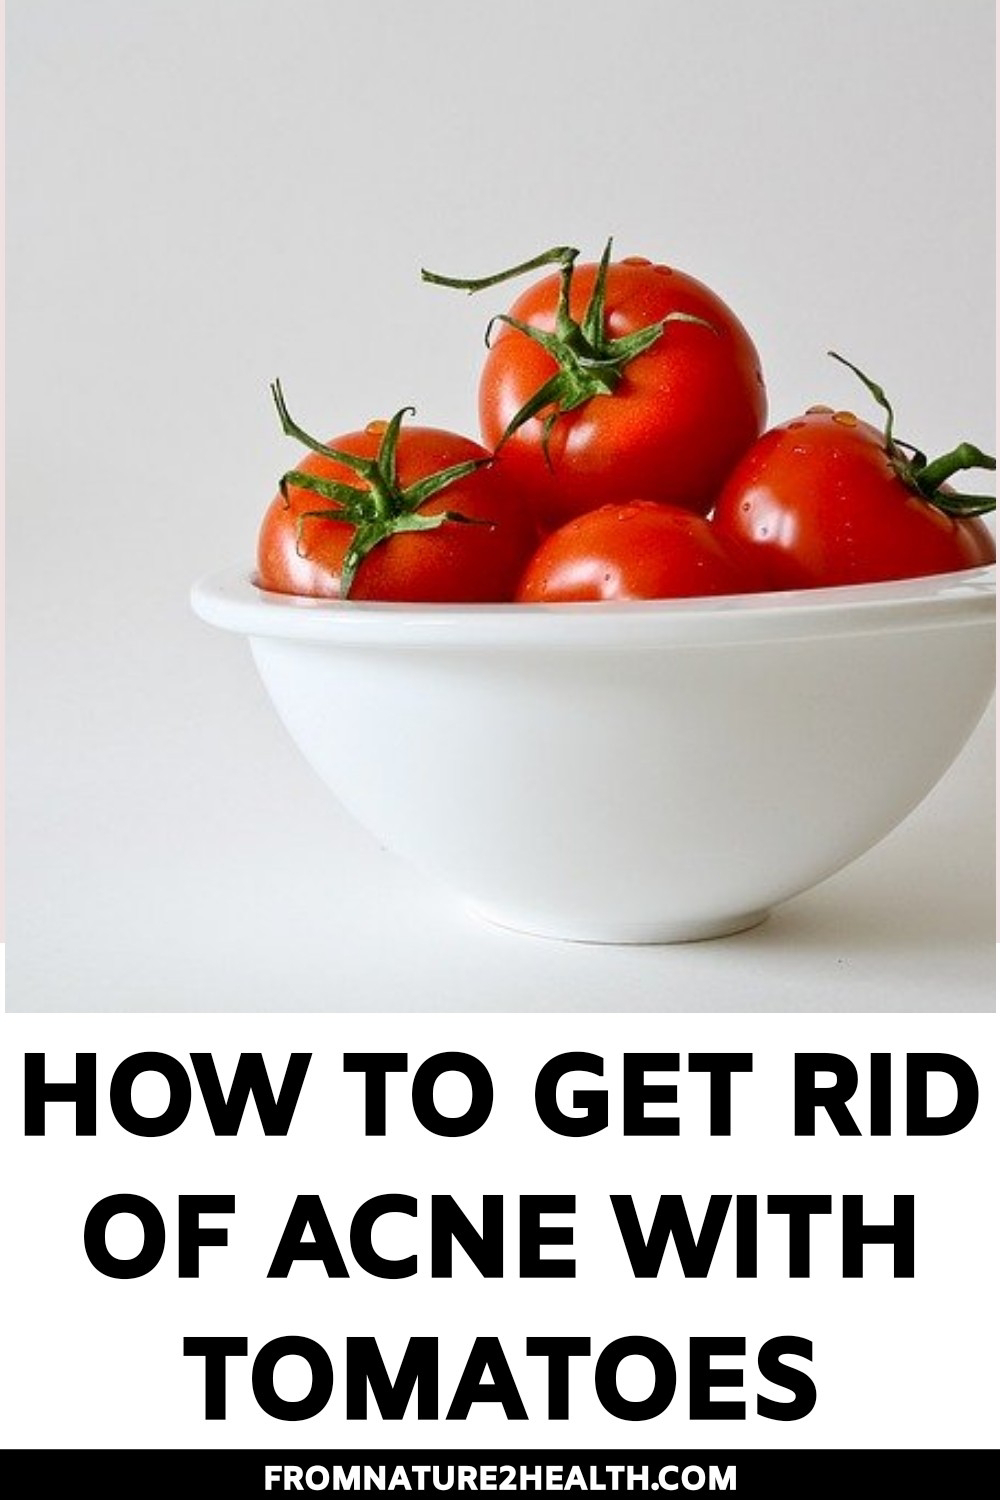 Ways to Get Rid of Acne with Tomatoes